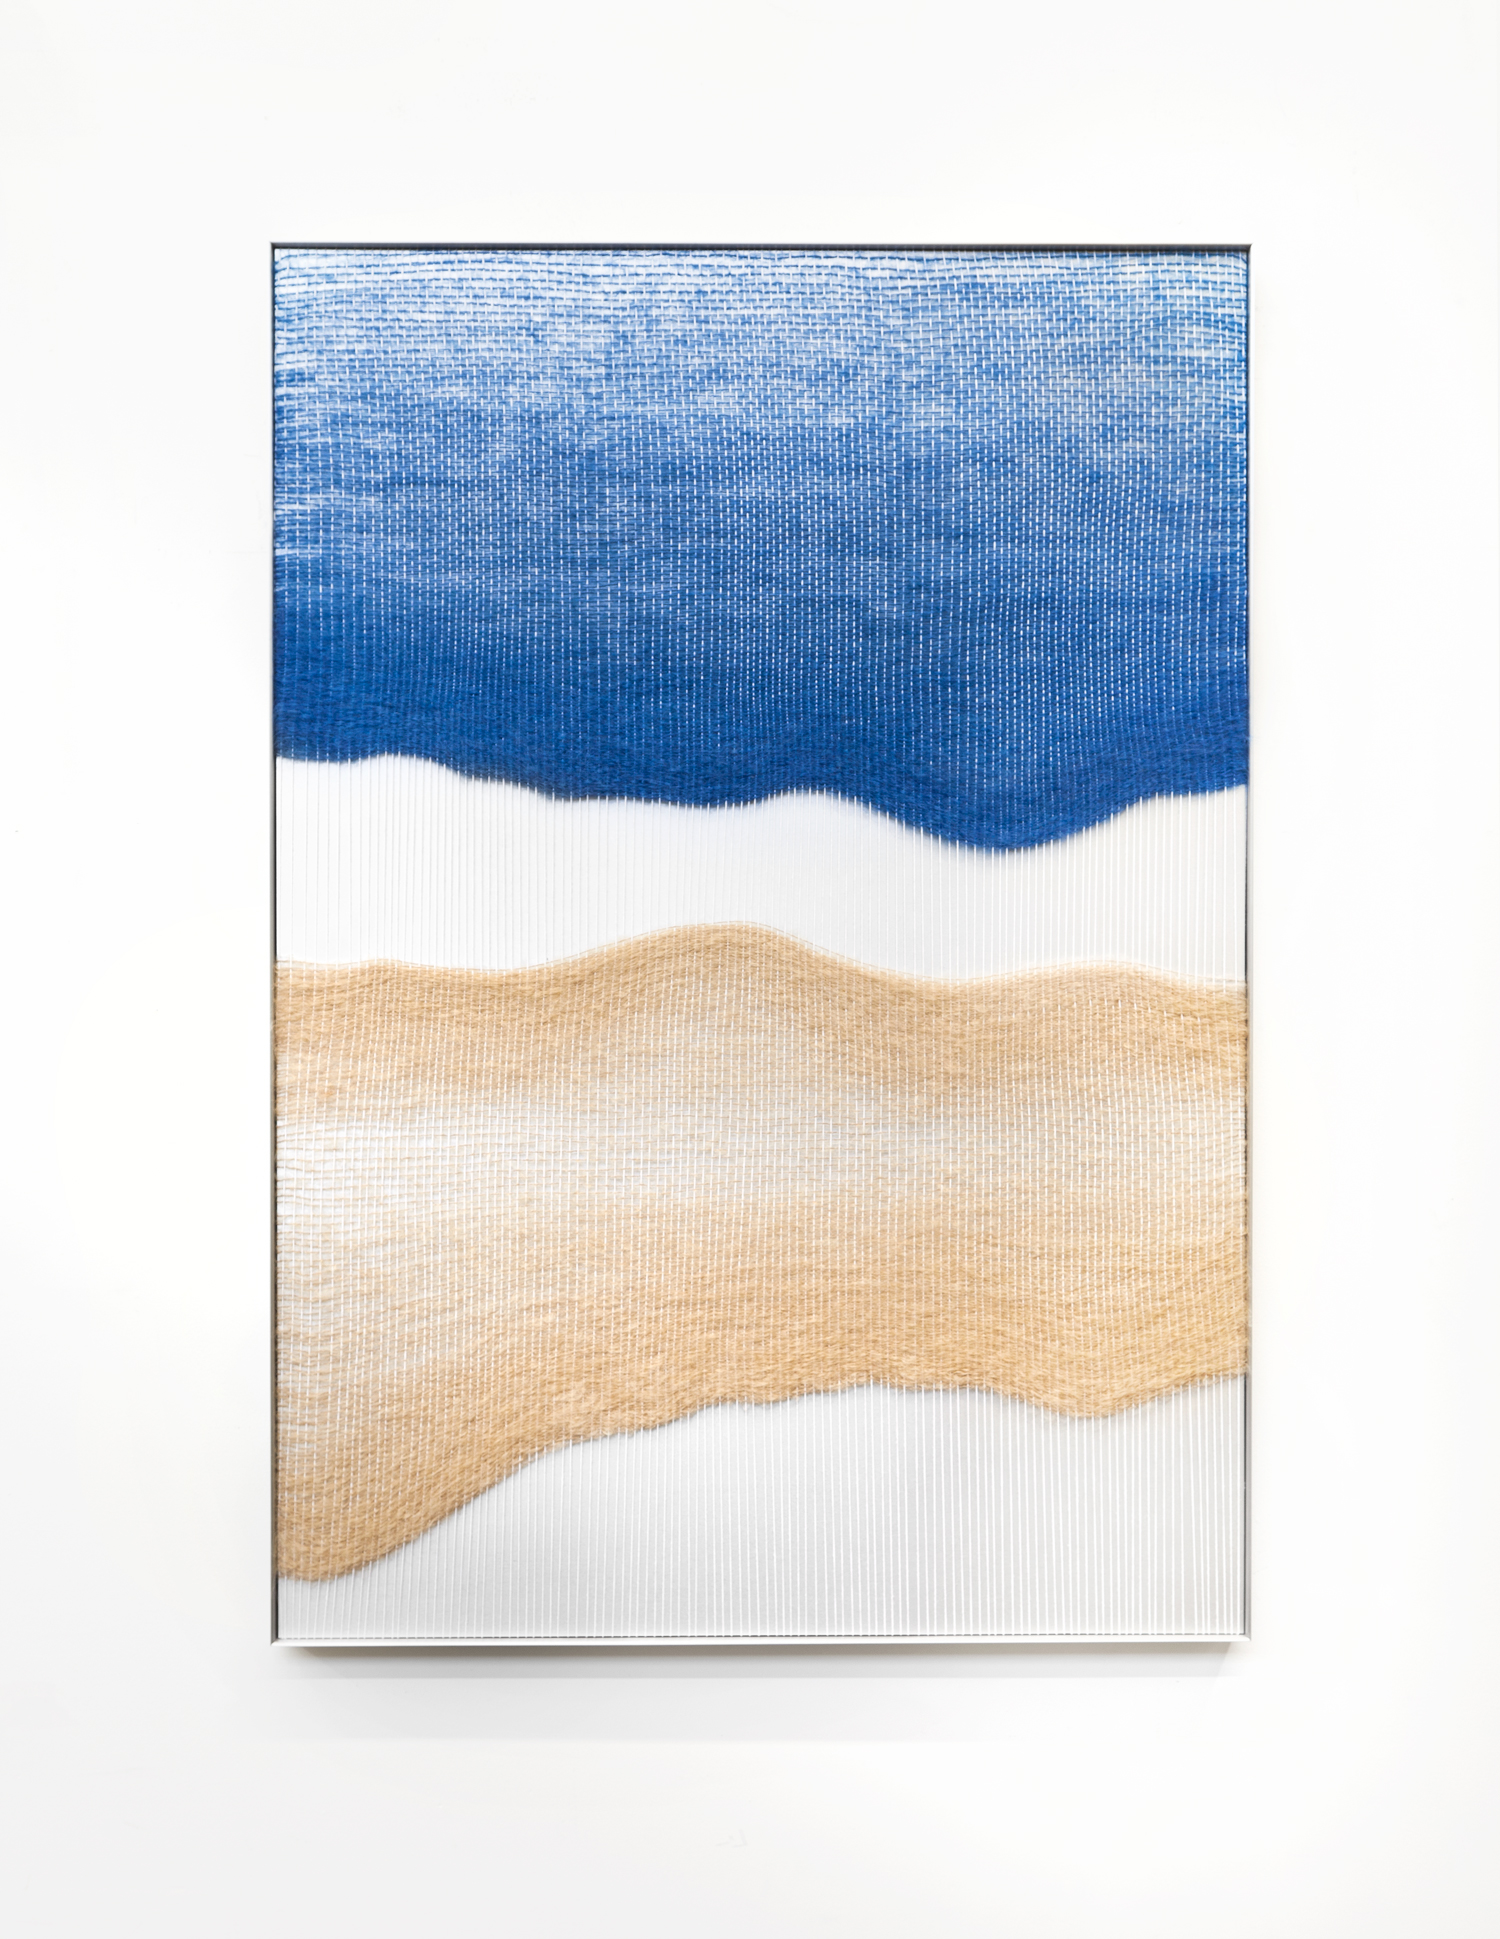 MimiJung_Blue_and_Tan_Live_Edge_Forms_1.jpg